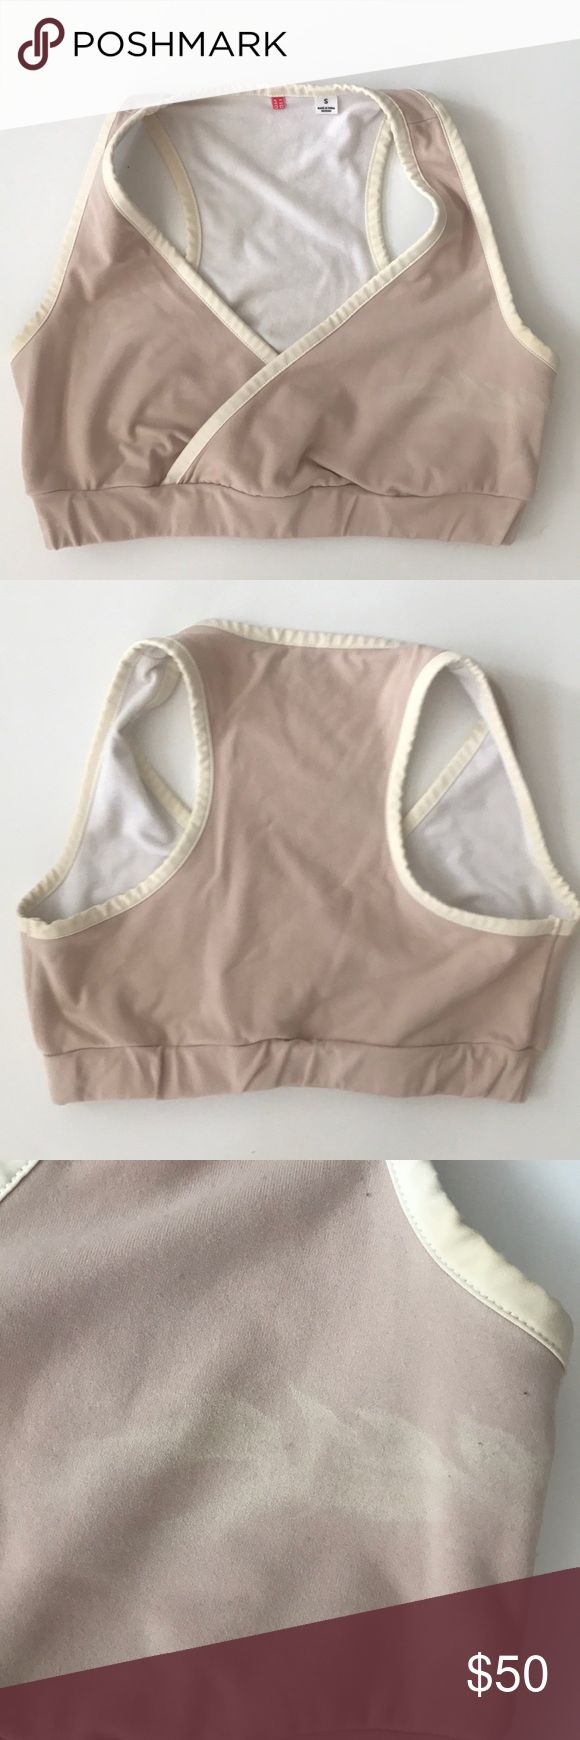 beautiful pale pink bra top- uniqlo Gorgeous pale pink nude neutral beige bra top by japanese favorite - uniqlo. size Small basics. perfect for layering daily or as a low impact sports bra for yoga. only worn once. in great condition save a light white marking on one side ( see second photo) that looks like a feather design. such a beautiful piece racerback. cross front  ( similar to alo, onzie, teeki, varley, vimmia, gymshark, lna, zara, Uniqlo Intimates & Sleepwear Bras